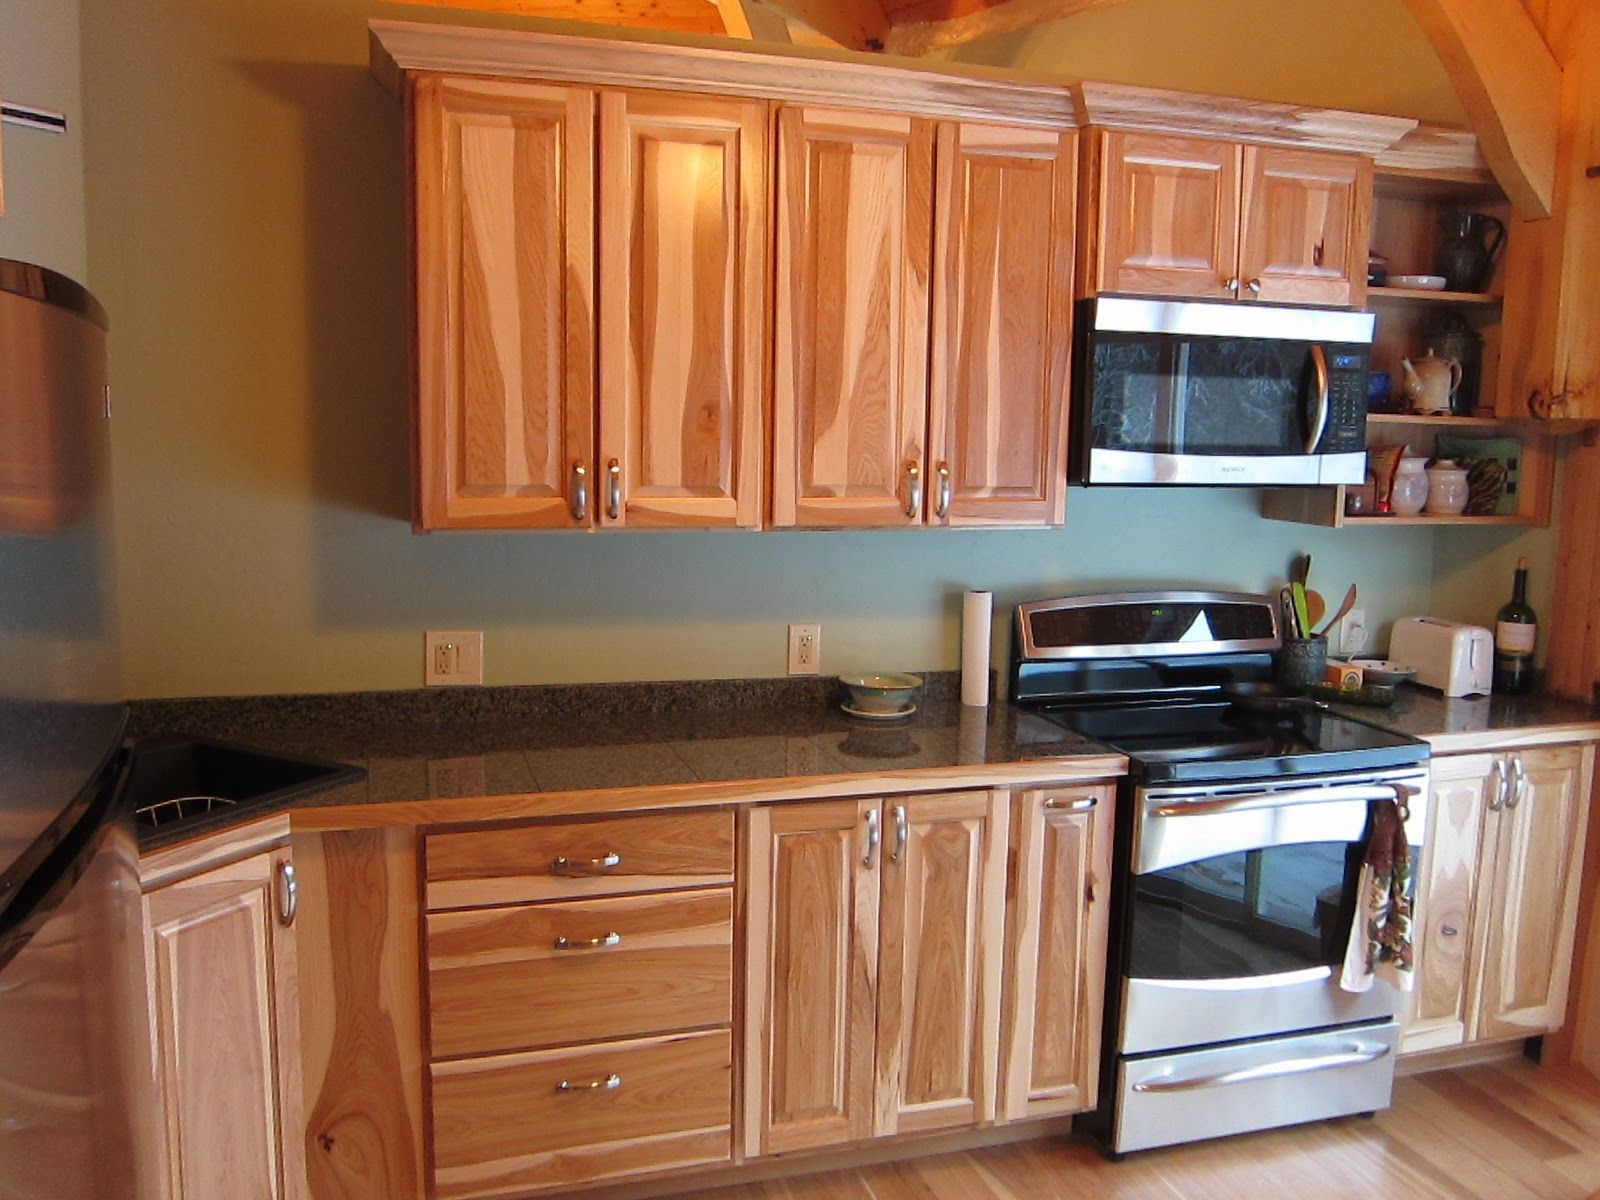 hickory kitchen cabinets hickory kitchen cabinets hickory cabinets